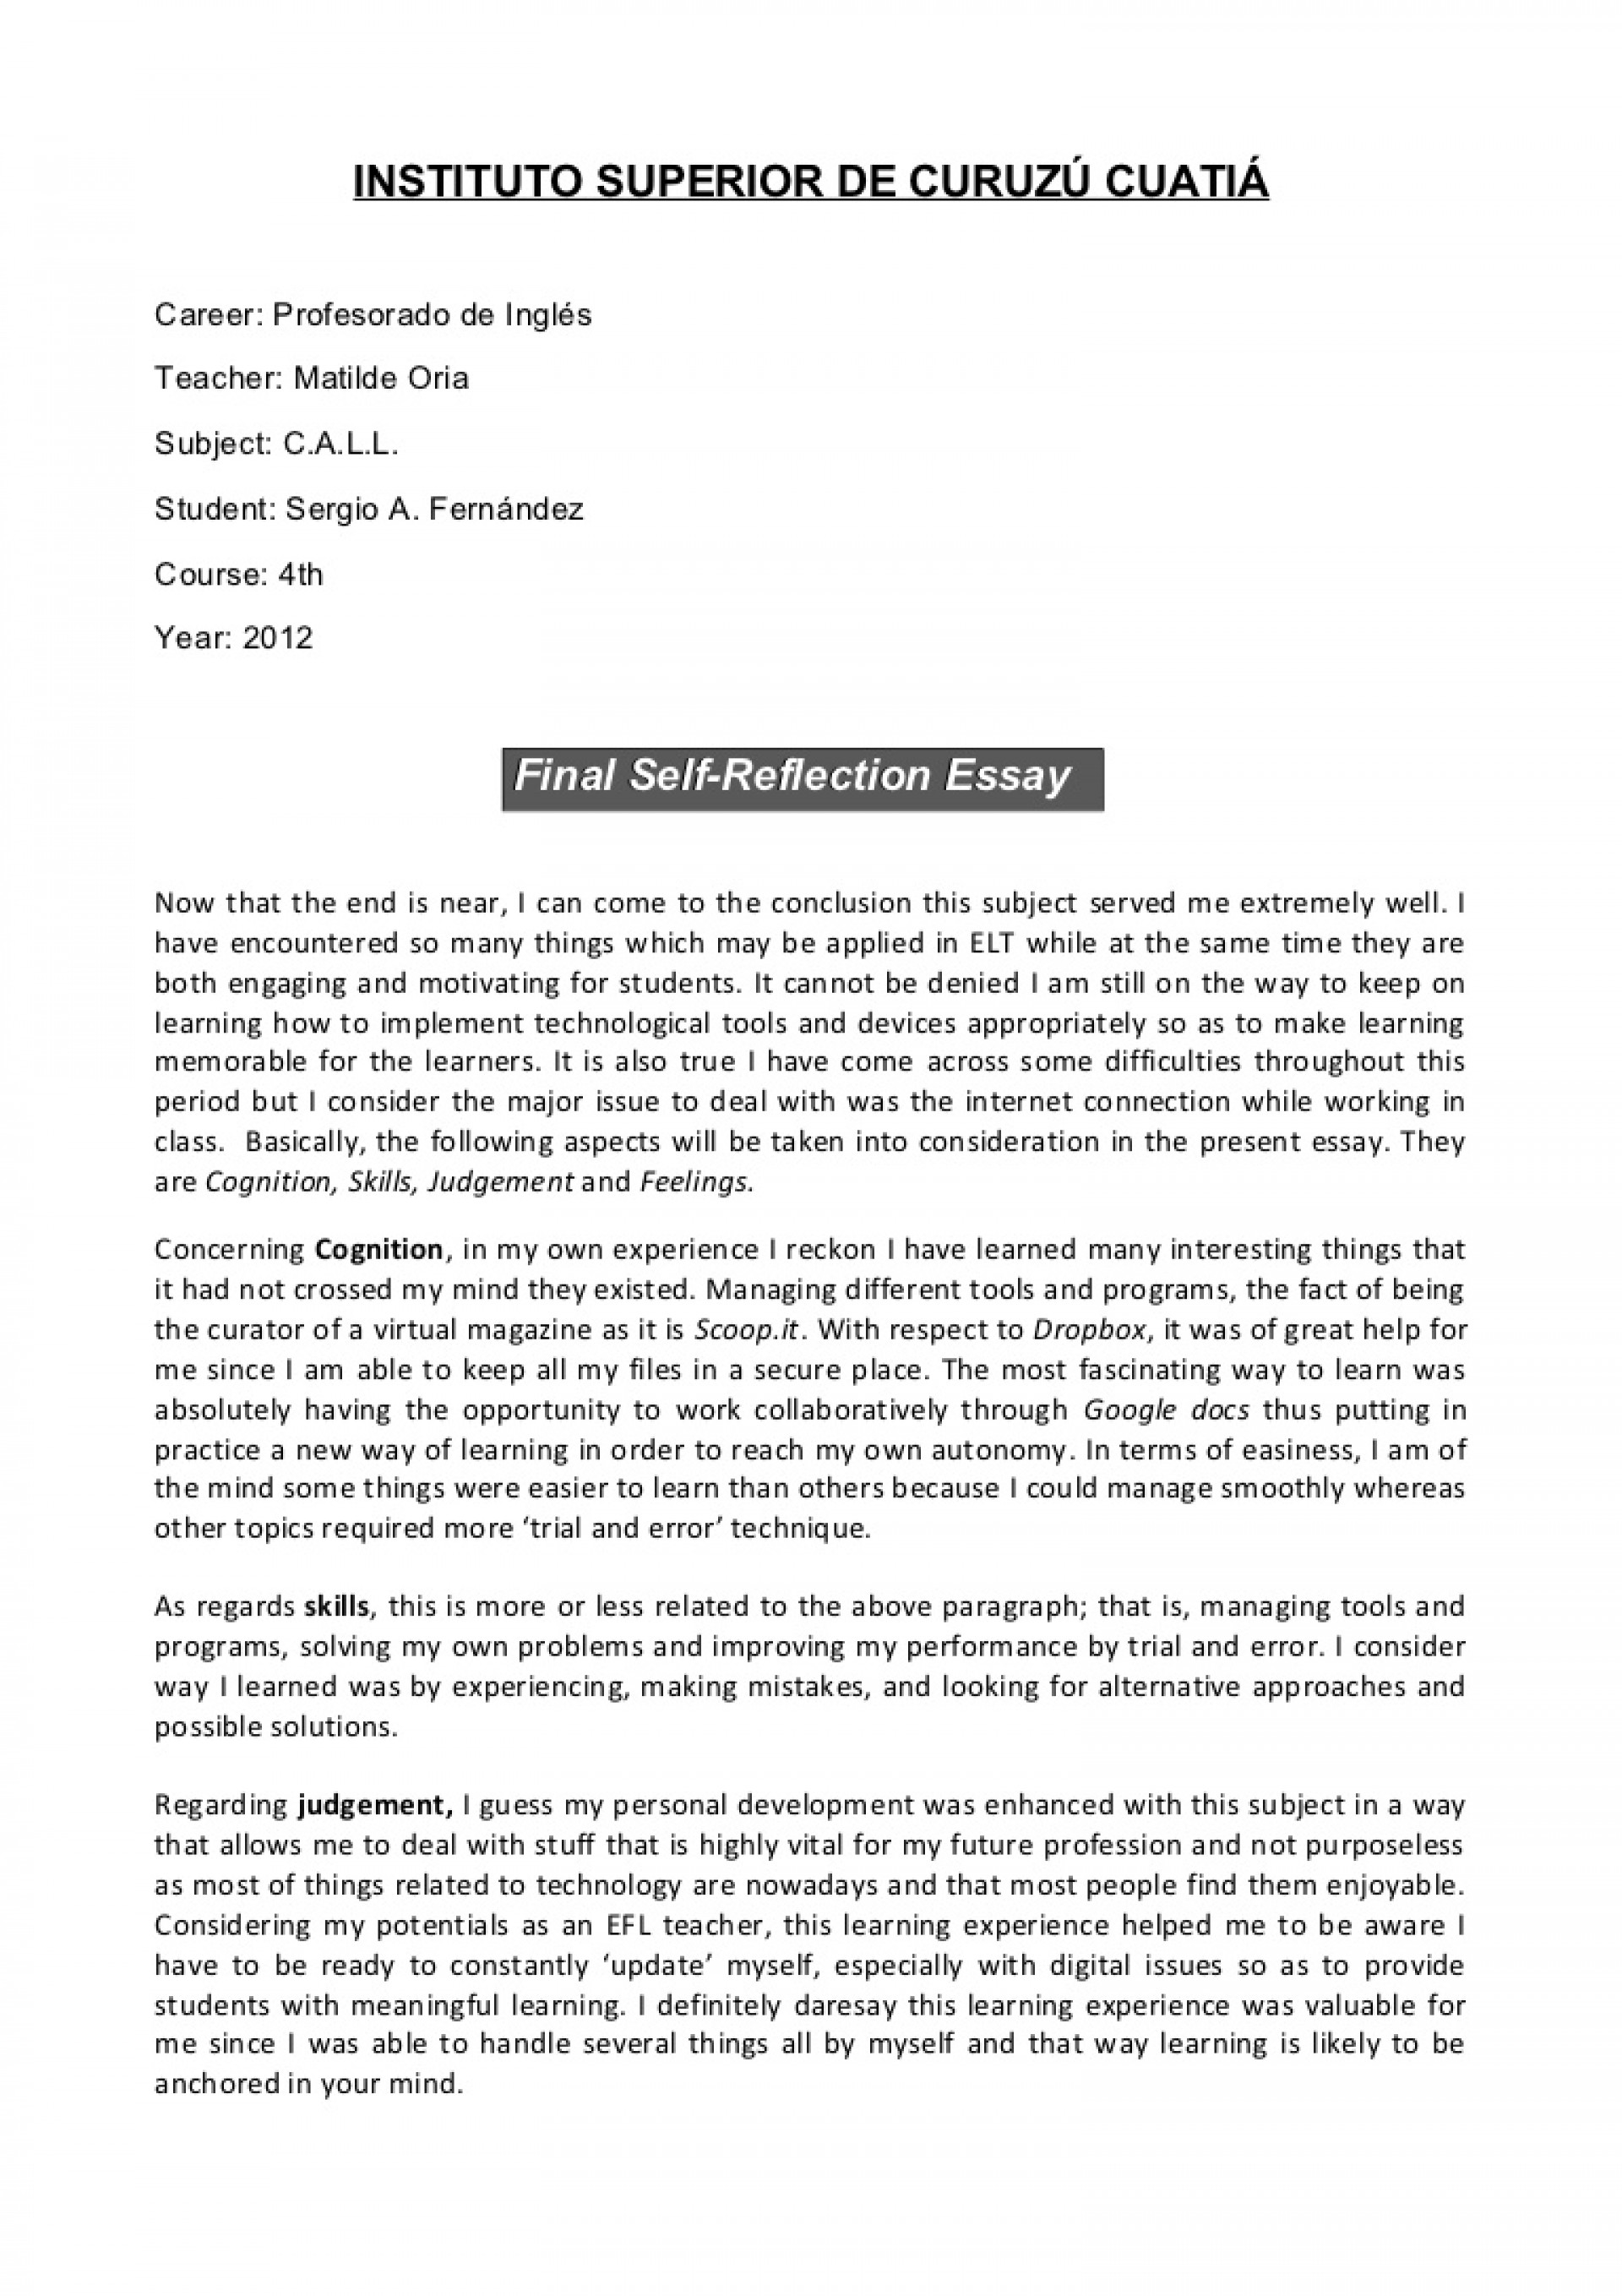 007 Reflectionsay Format Reflective Self Examples Mla Sample Sergio Finalself Reflectionessay Phpapp01 Thumbn Argumentative Apa Formal Tagalog Asa Critical Mba Scholarship Wondrous Reflection Essay Example Form Guidelines 1920